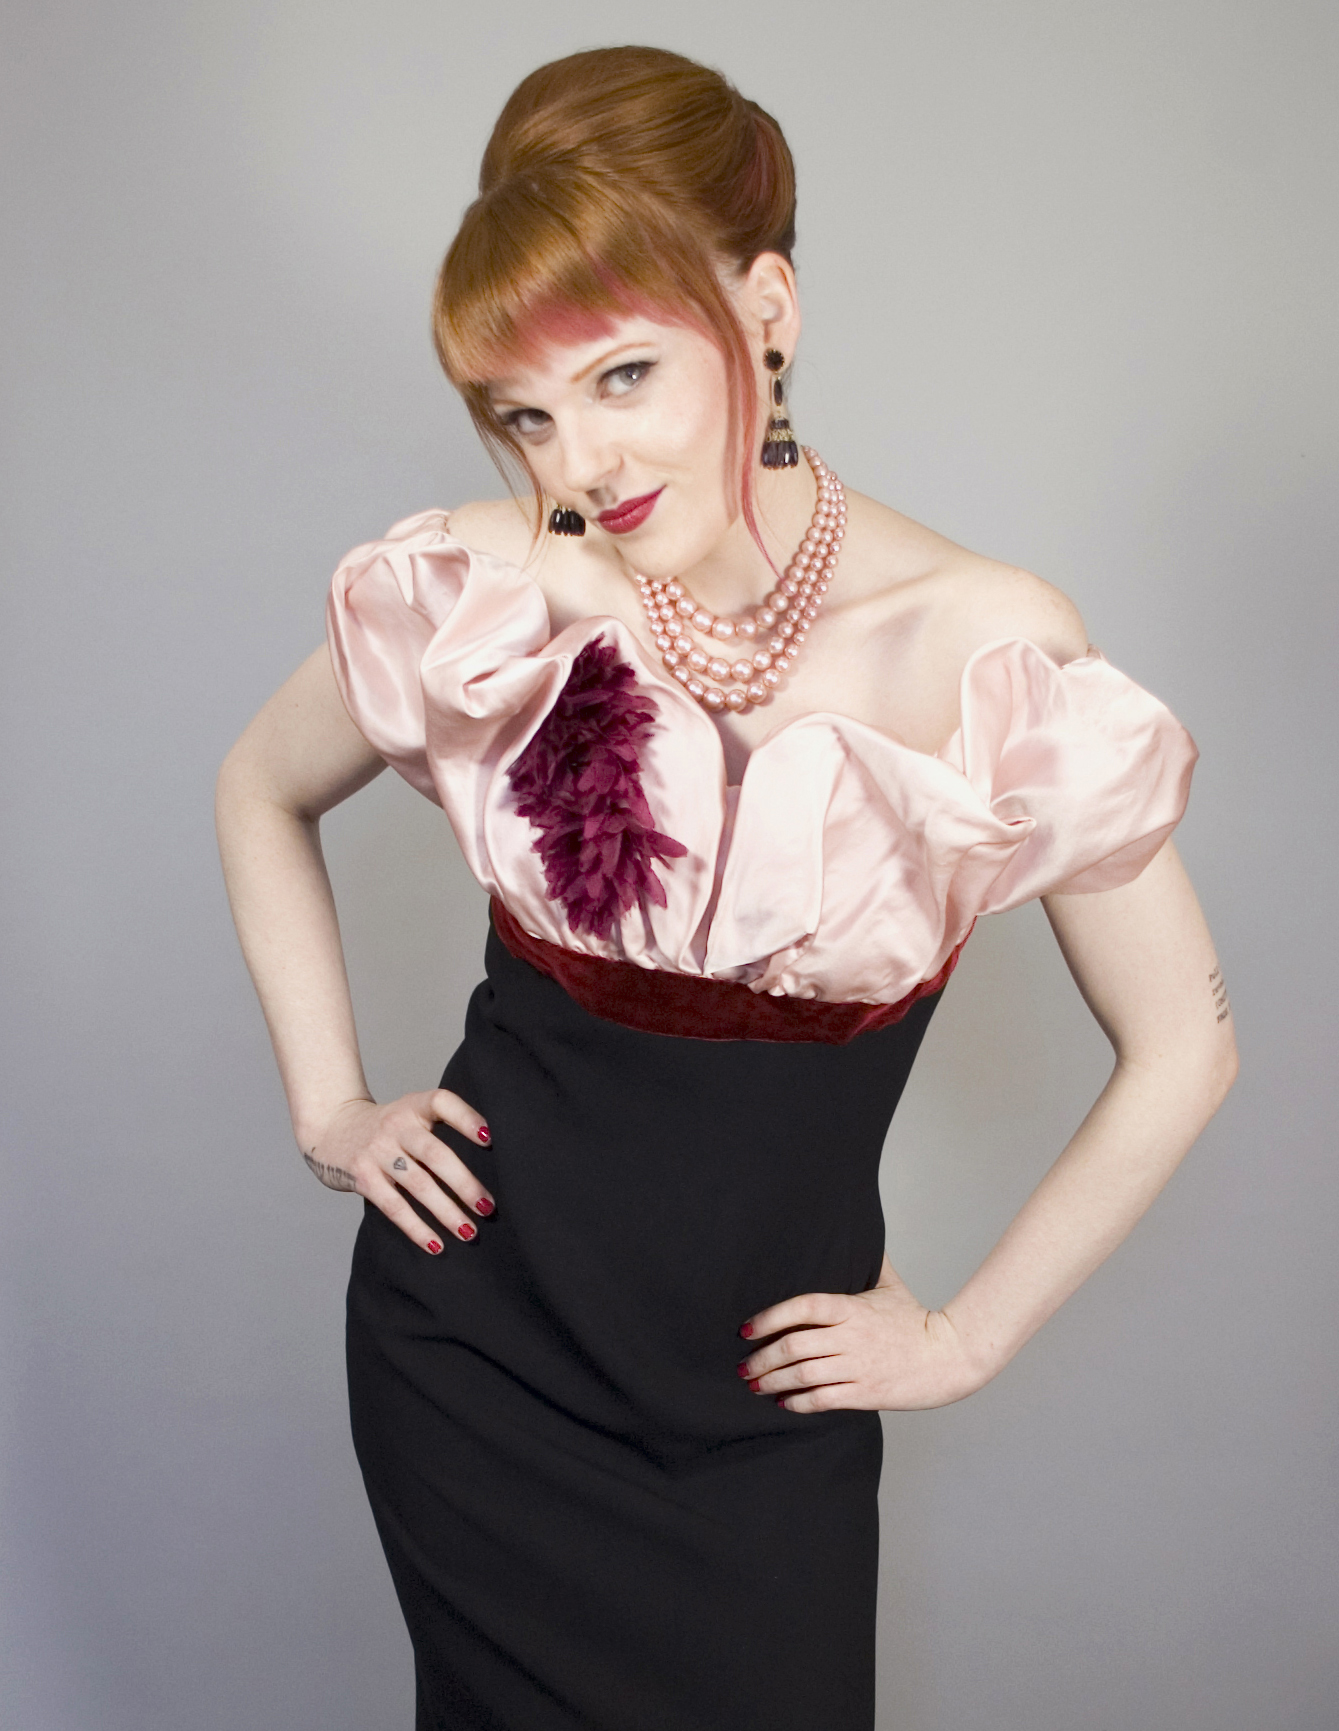 1950s bombshell dress har and makeup by Antje Kastner Studio